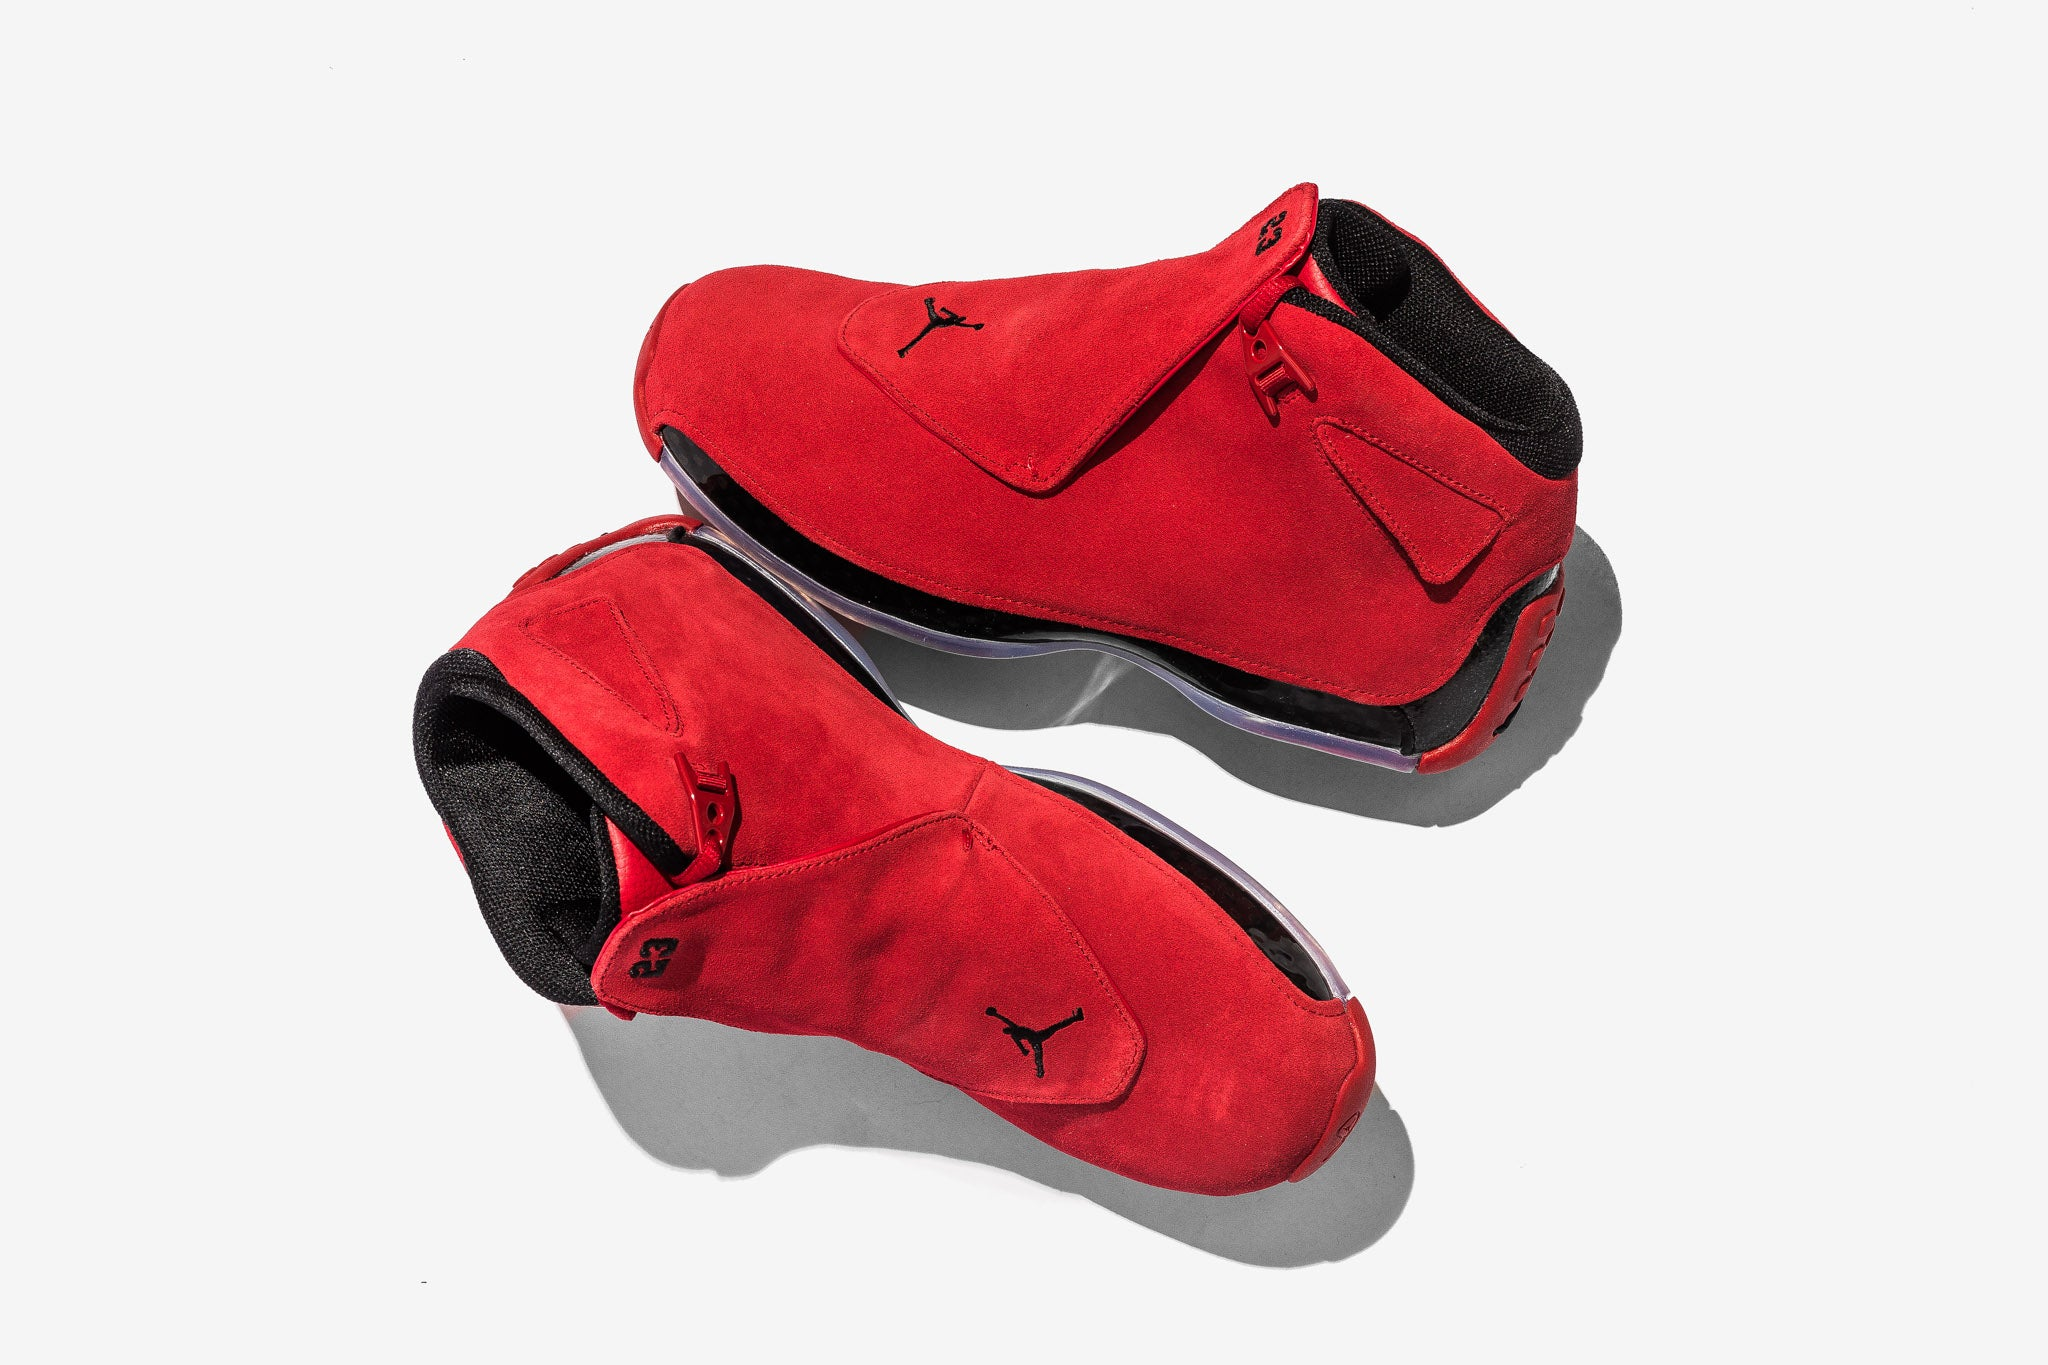 The Air Jordan 18 would be the last pair for MJ to lace up on the court before retiring in 2003. The Air Jordan 18 Retro revisits this chapter in the ...